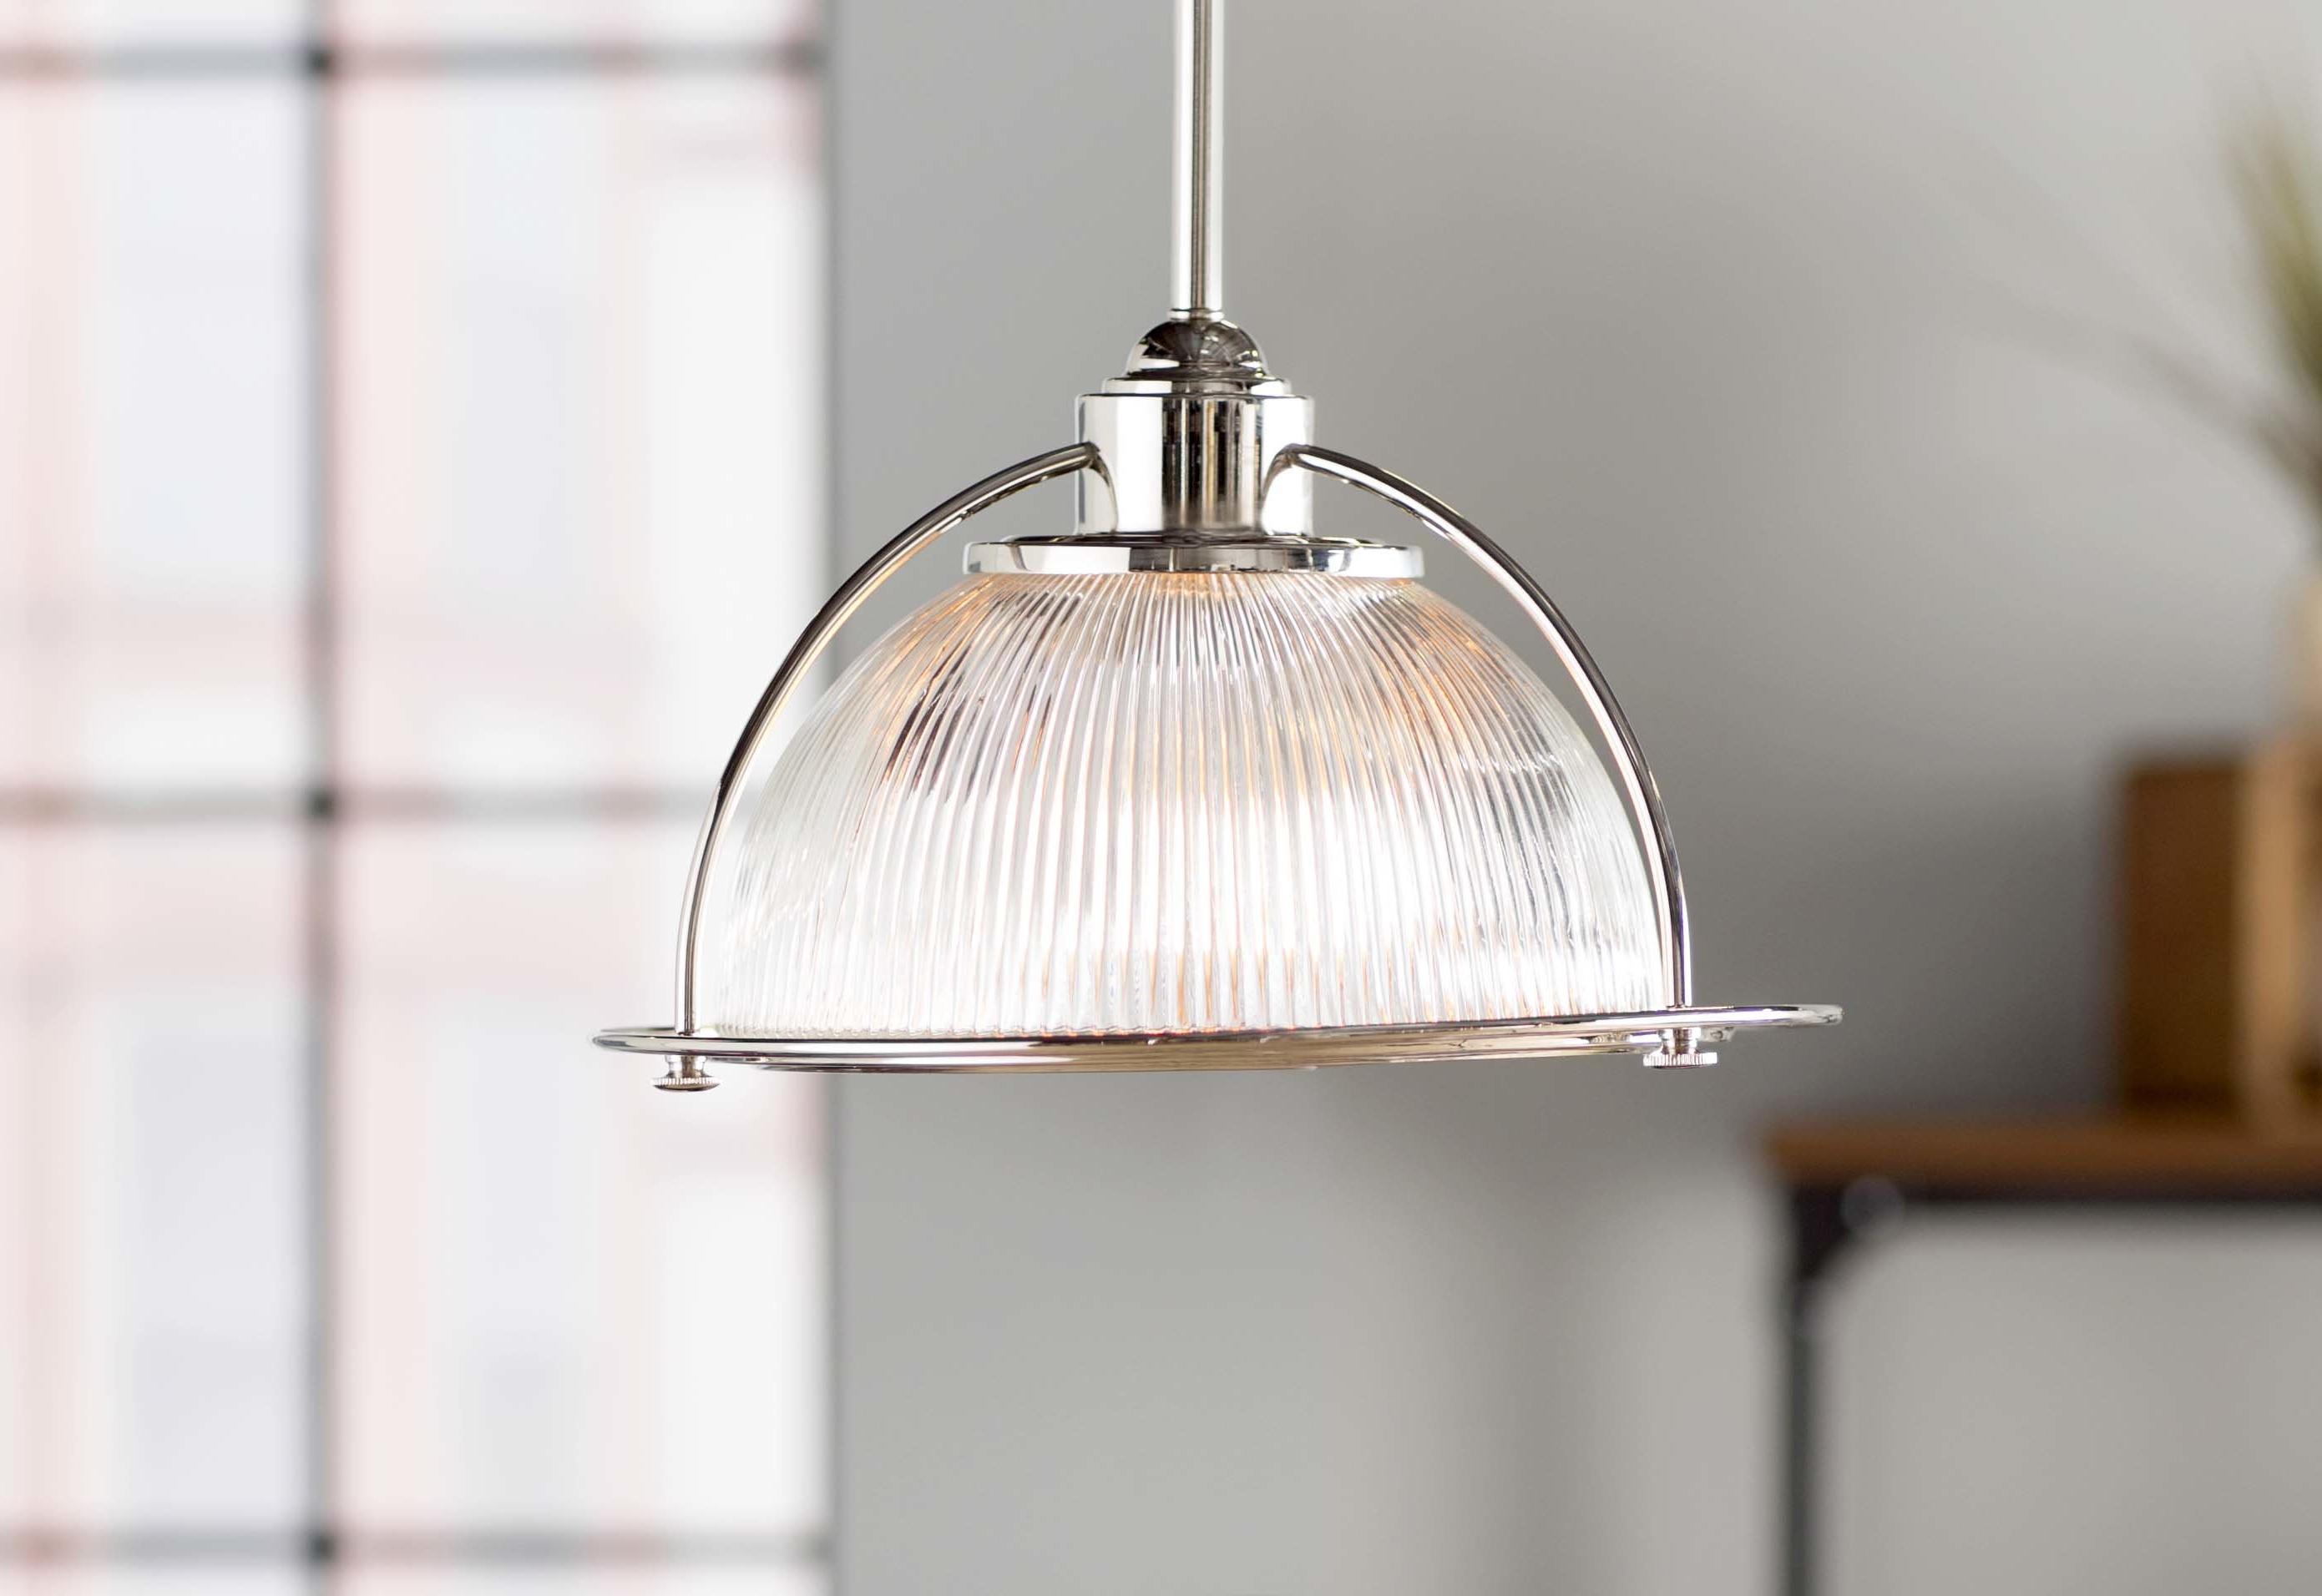 Well Liked Granville 2 Light Single Dome Pendants Regarding Brickford 1 Light Single Dome Pendant (View 14 of 20)